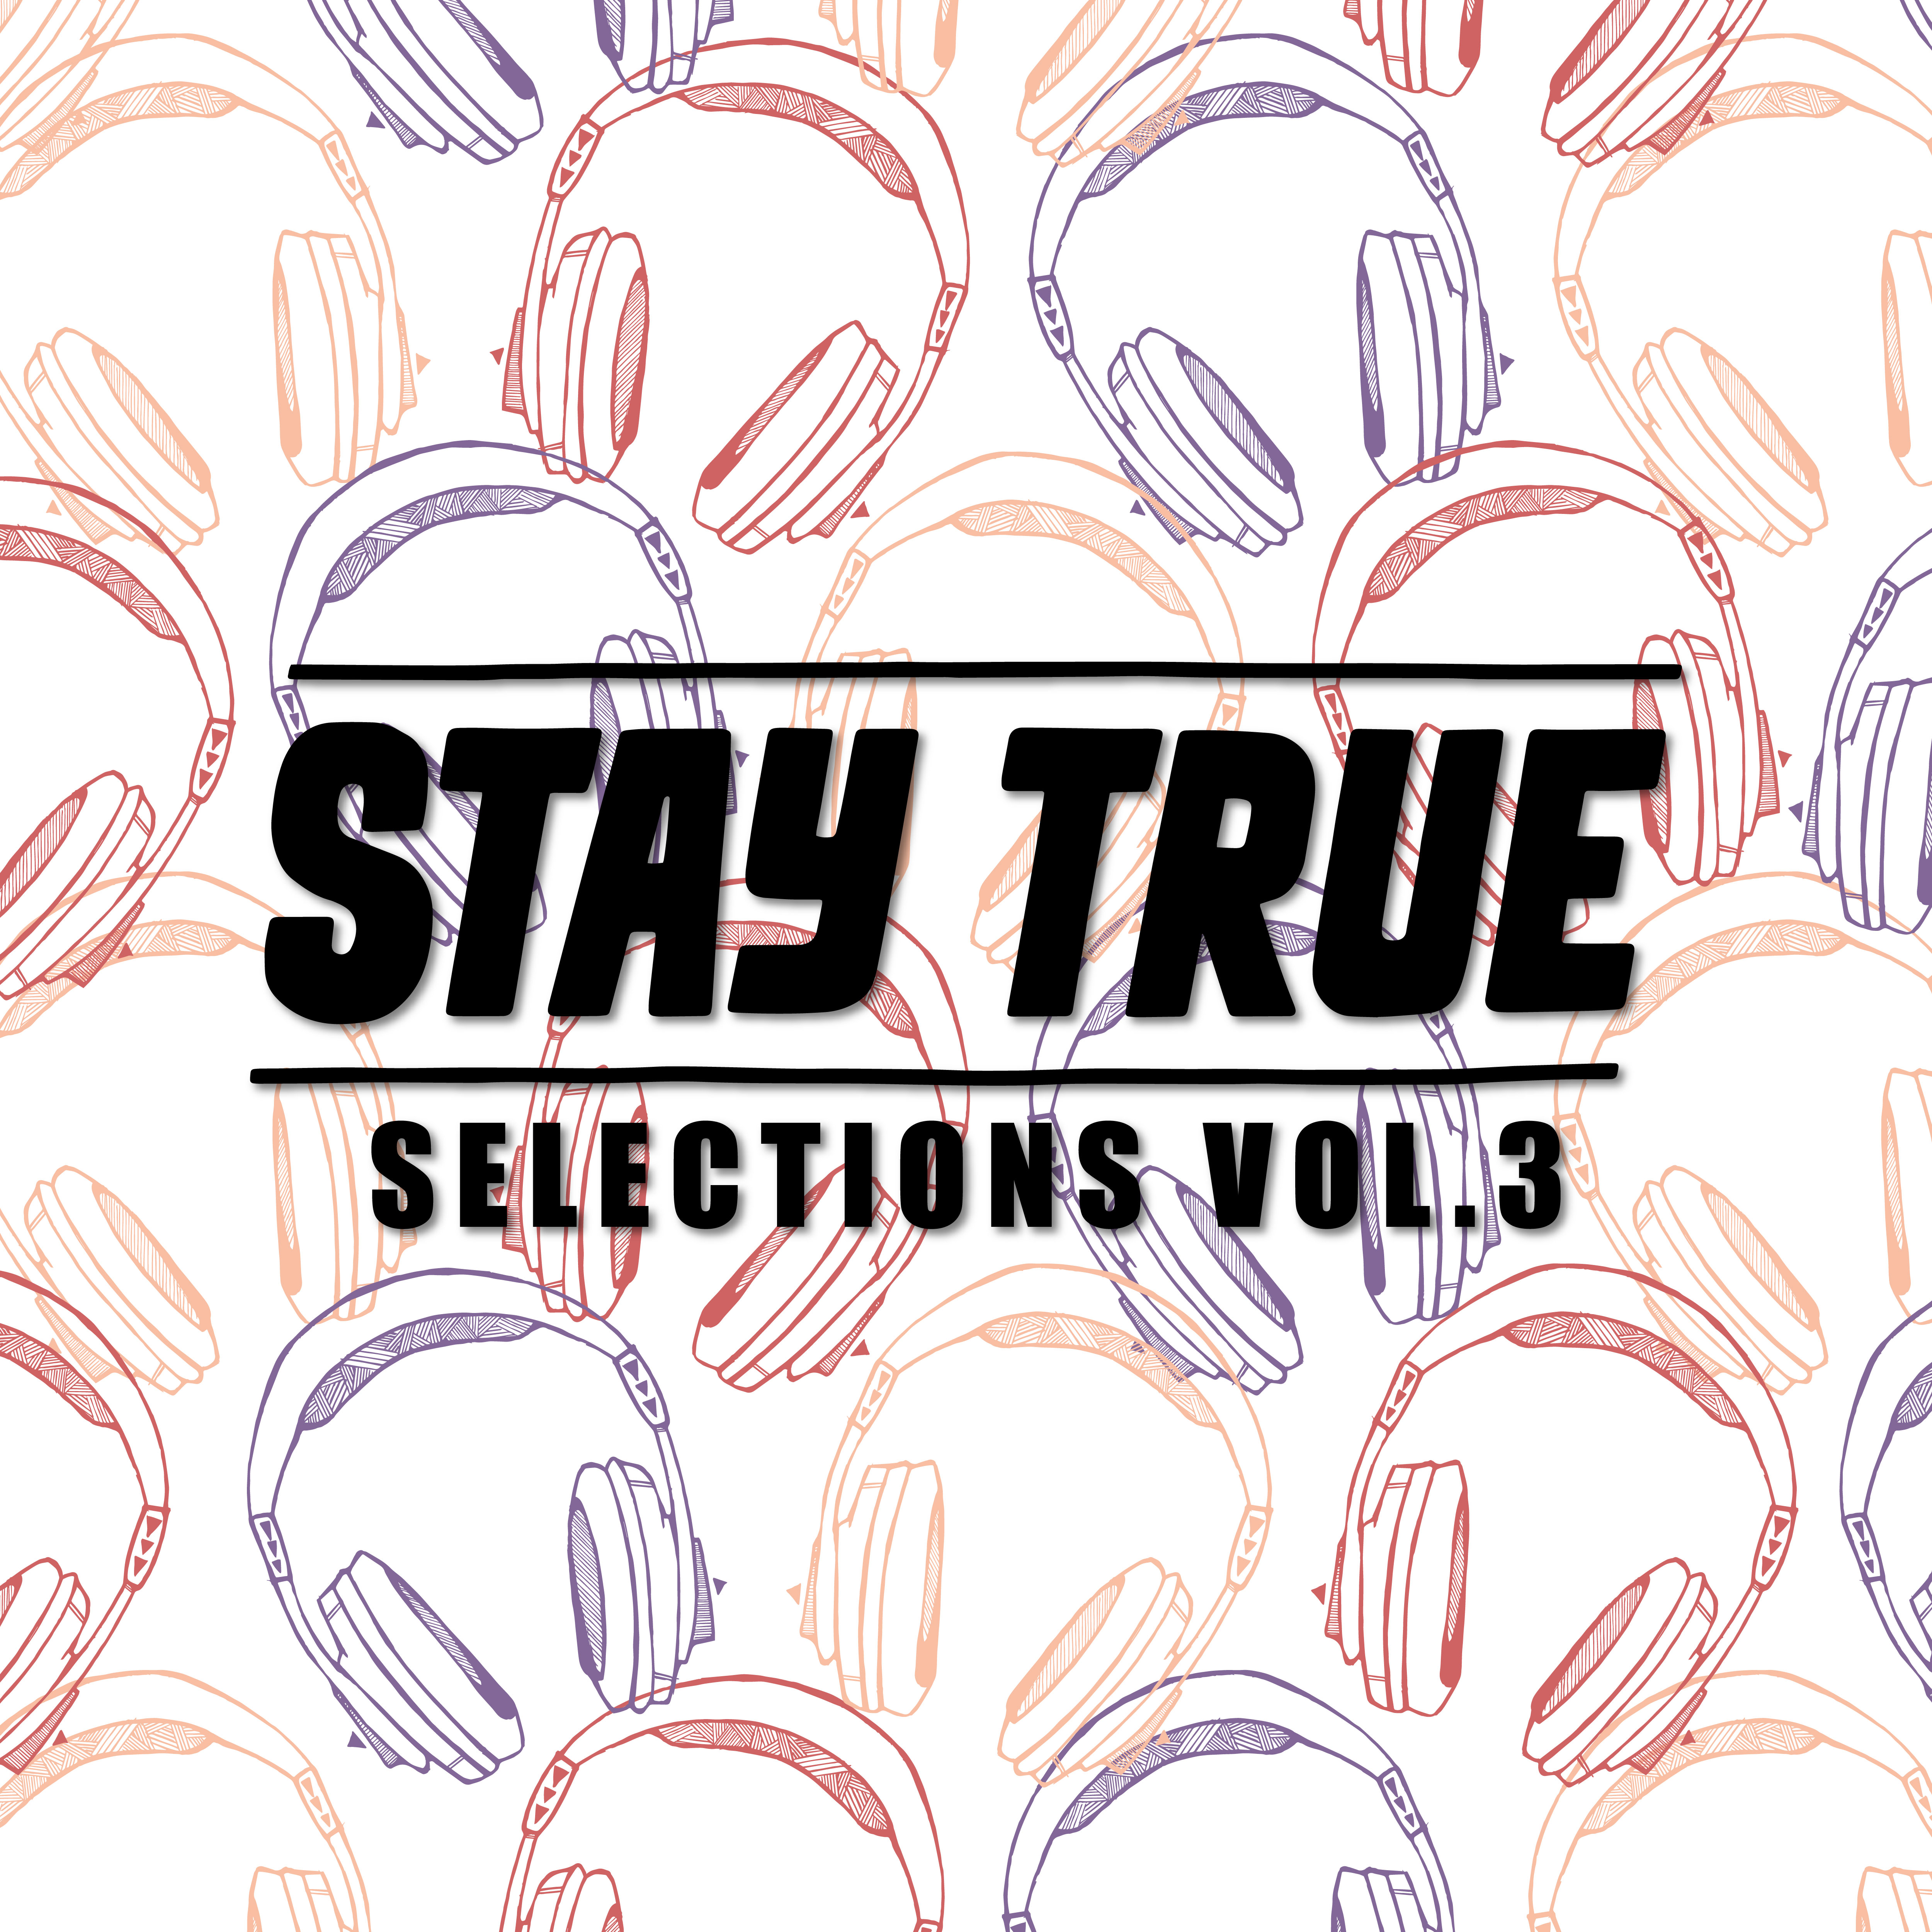 Various deep house stories vol 10 at juno download - Unearthing New Talent From Port Elizabeth To Soweto And Back To Johannesburg Quality Approved House Music From The Motherland